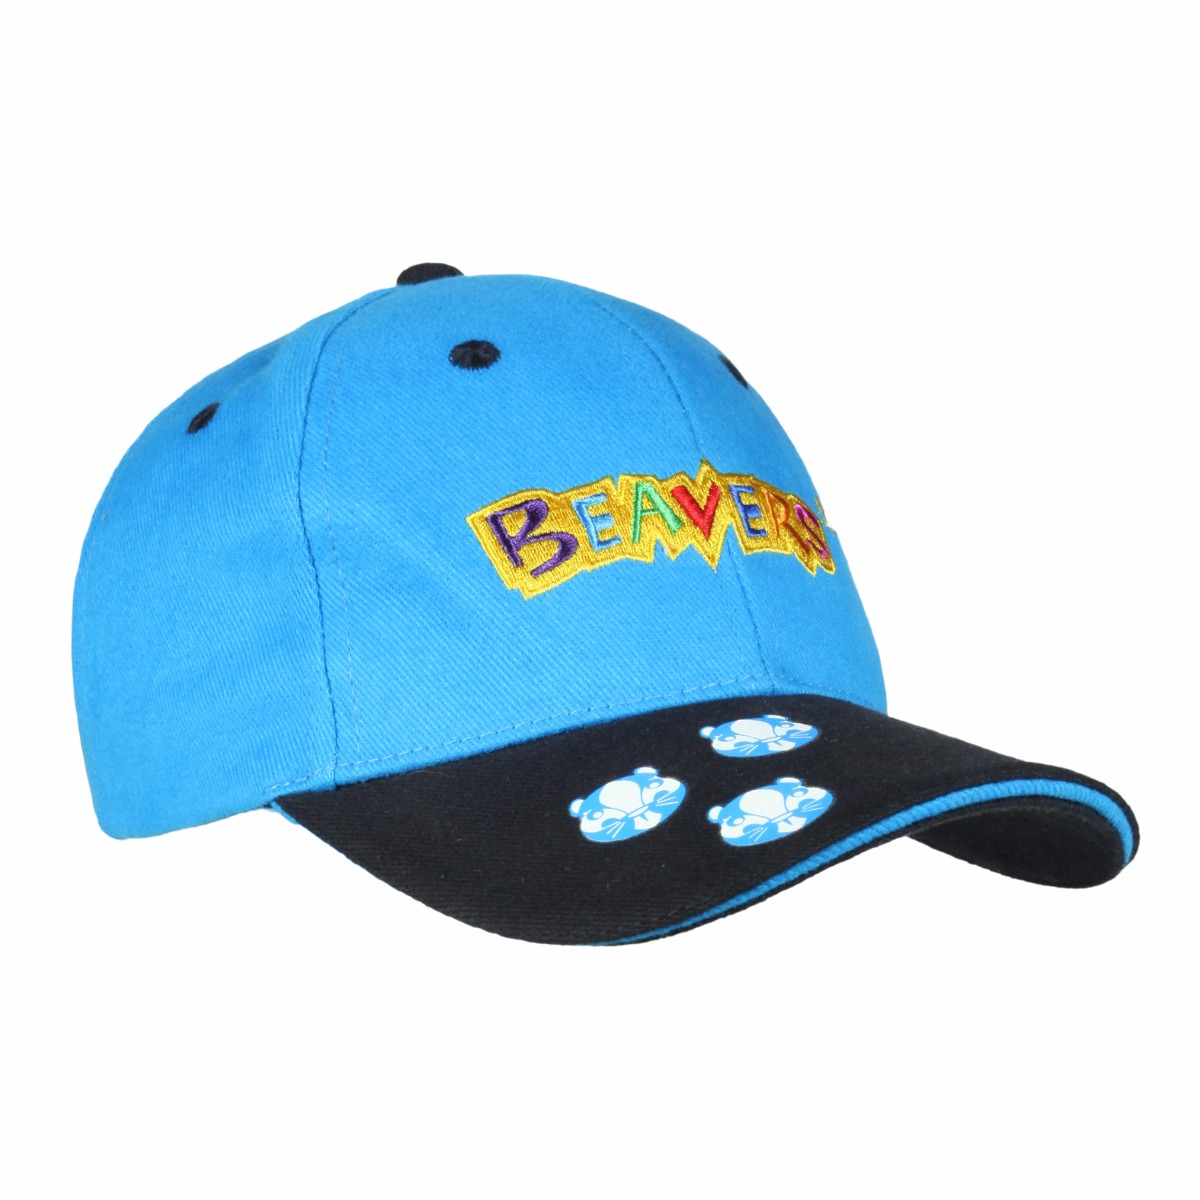 Beavers brushed cotton baseball cap with embroidered Beavers logo ... 166b0cb6b2d